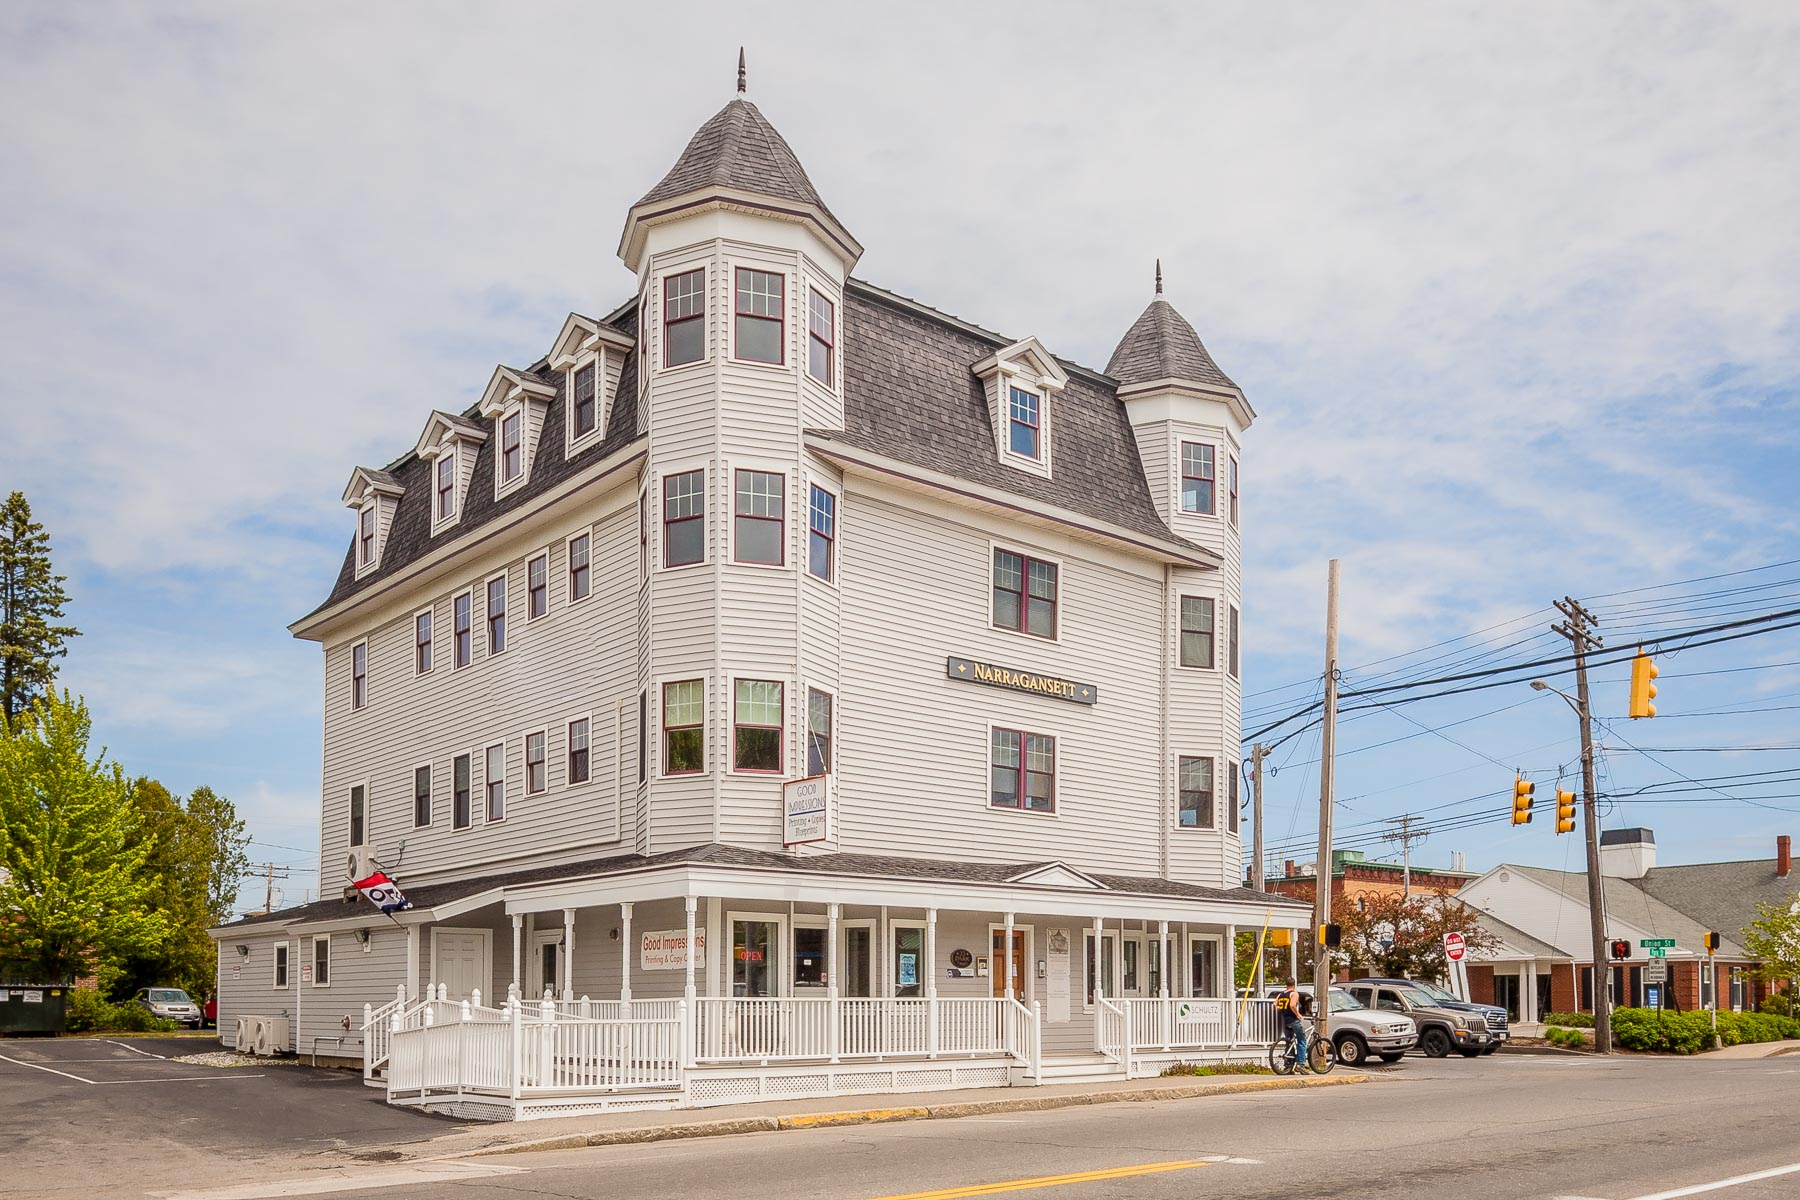 Commercial for Sale at Narragansett Building 33 Park Street Rockland, Maine 04841 United States